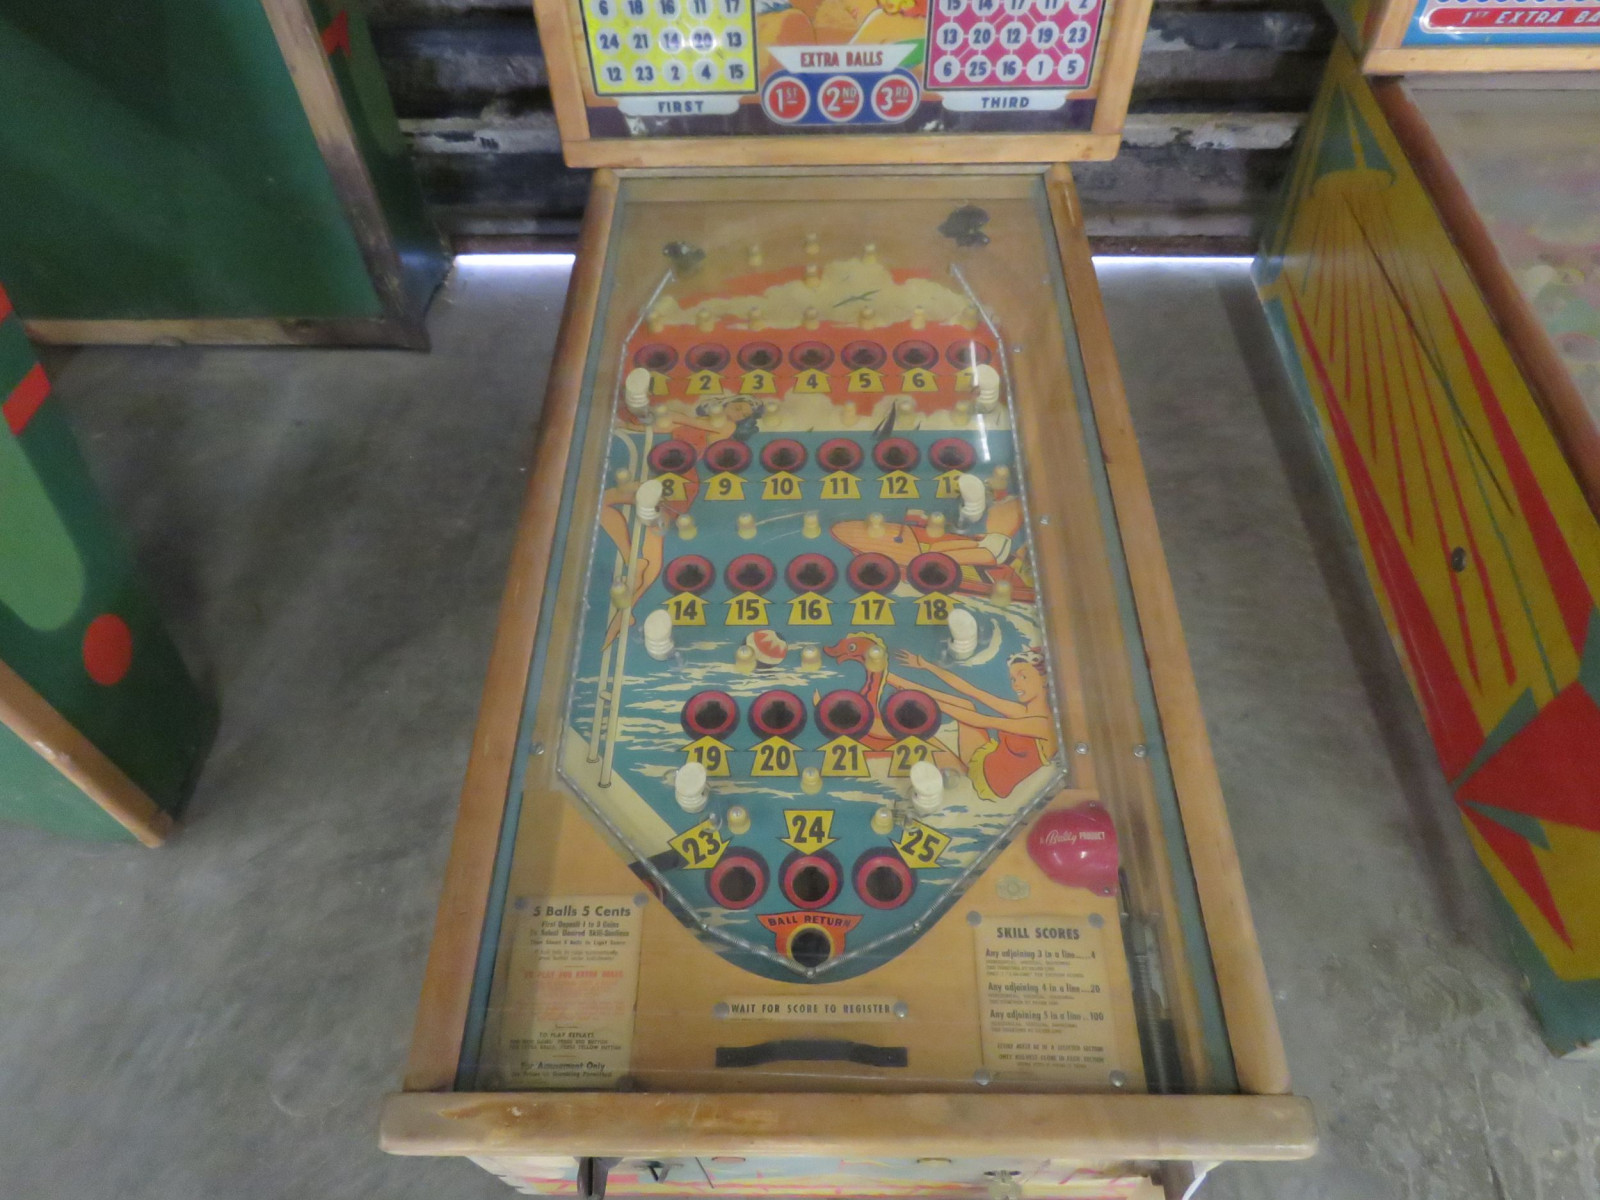 Vintage Bally Coney Island Pinball Machine - Image 2